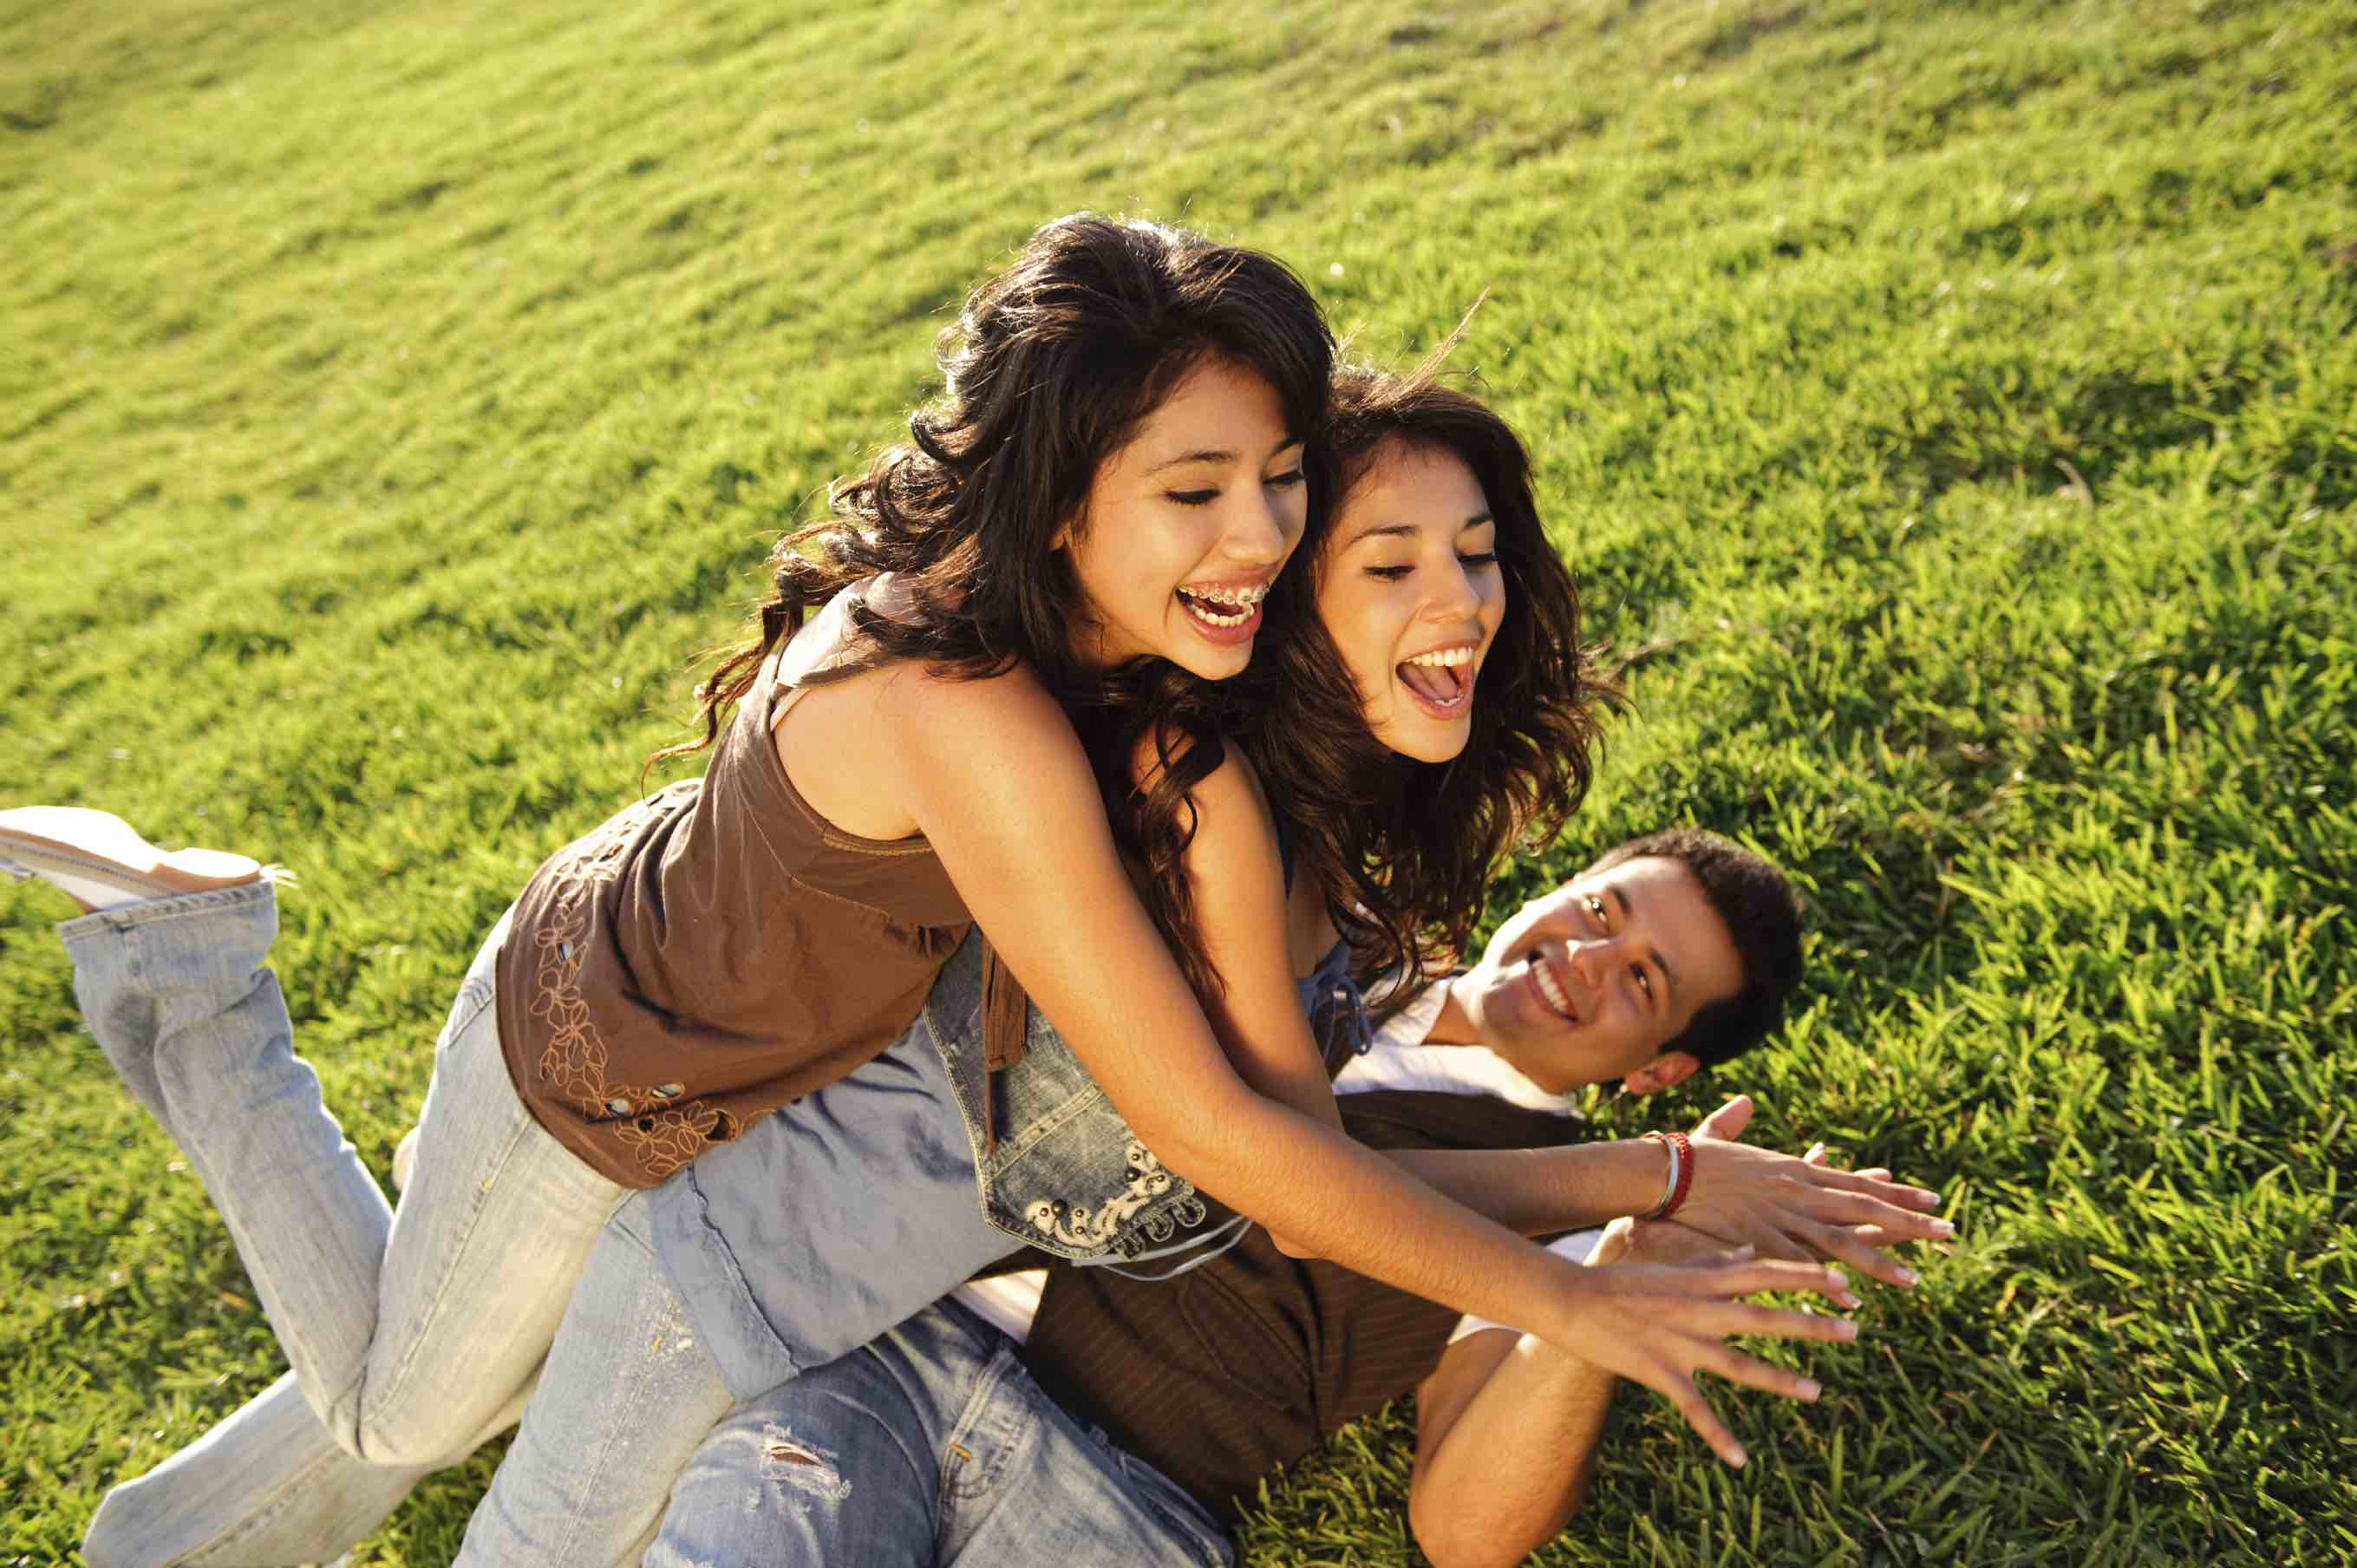 Teens and the Advantages of Risk-taking